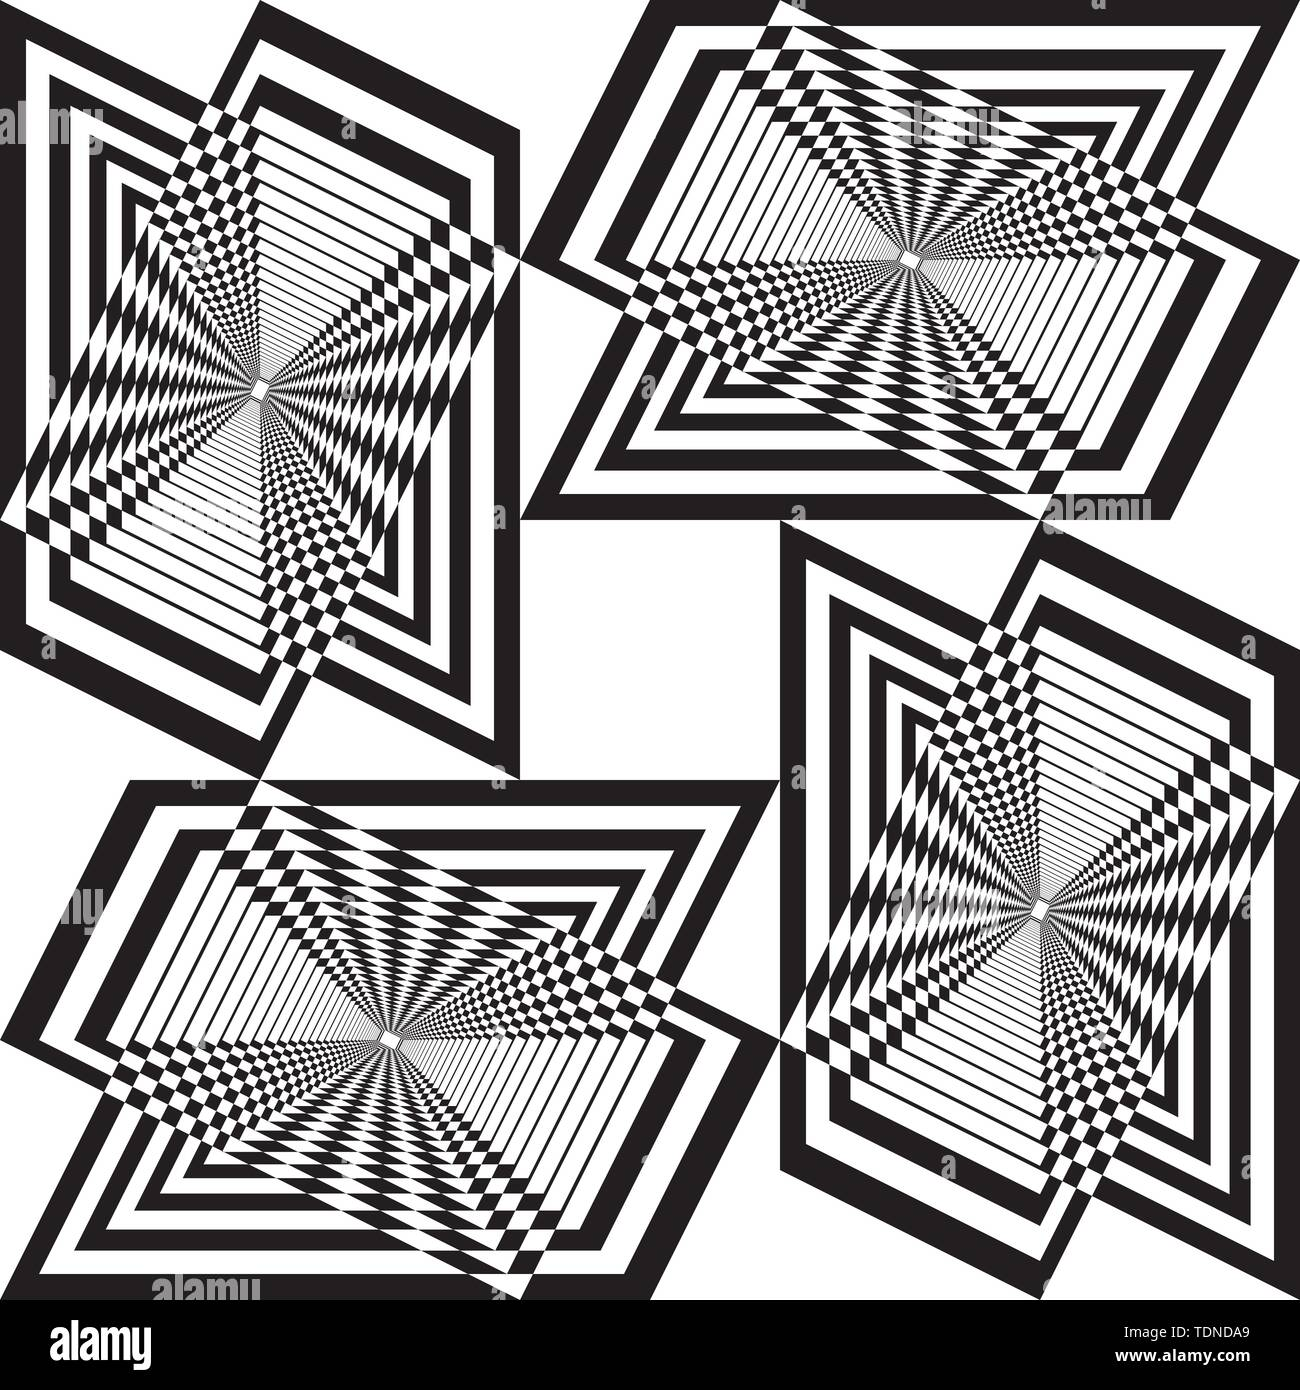 moultiple triangle intersections chessboard inspired seamless strukture abstract cut art deco illustration on transparent background - Stock Image